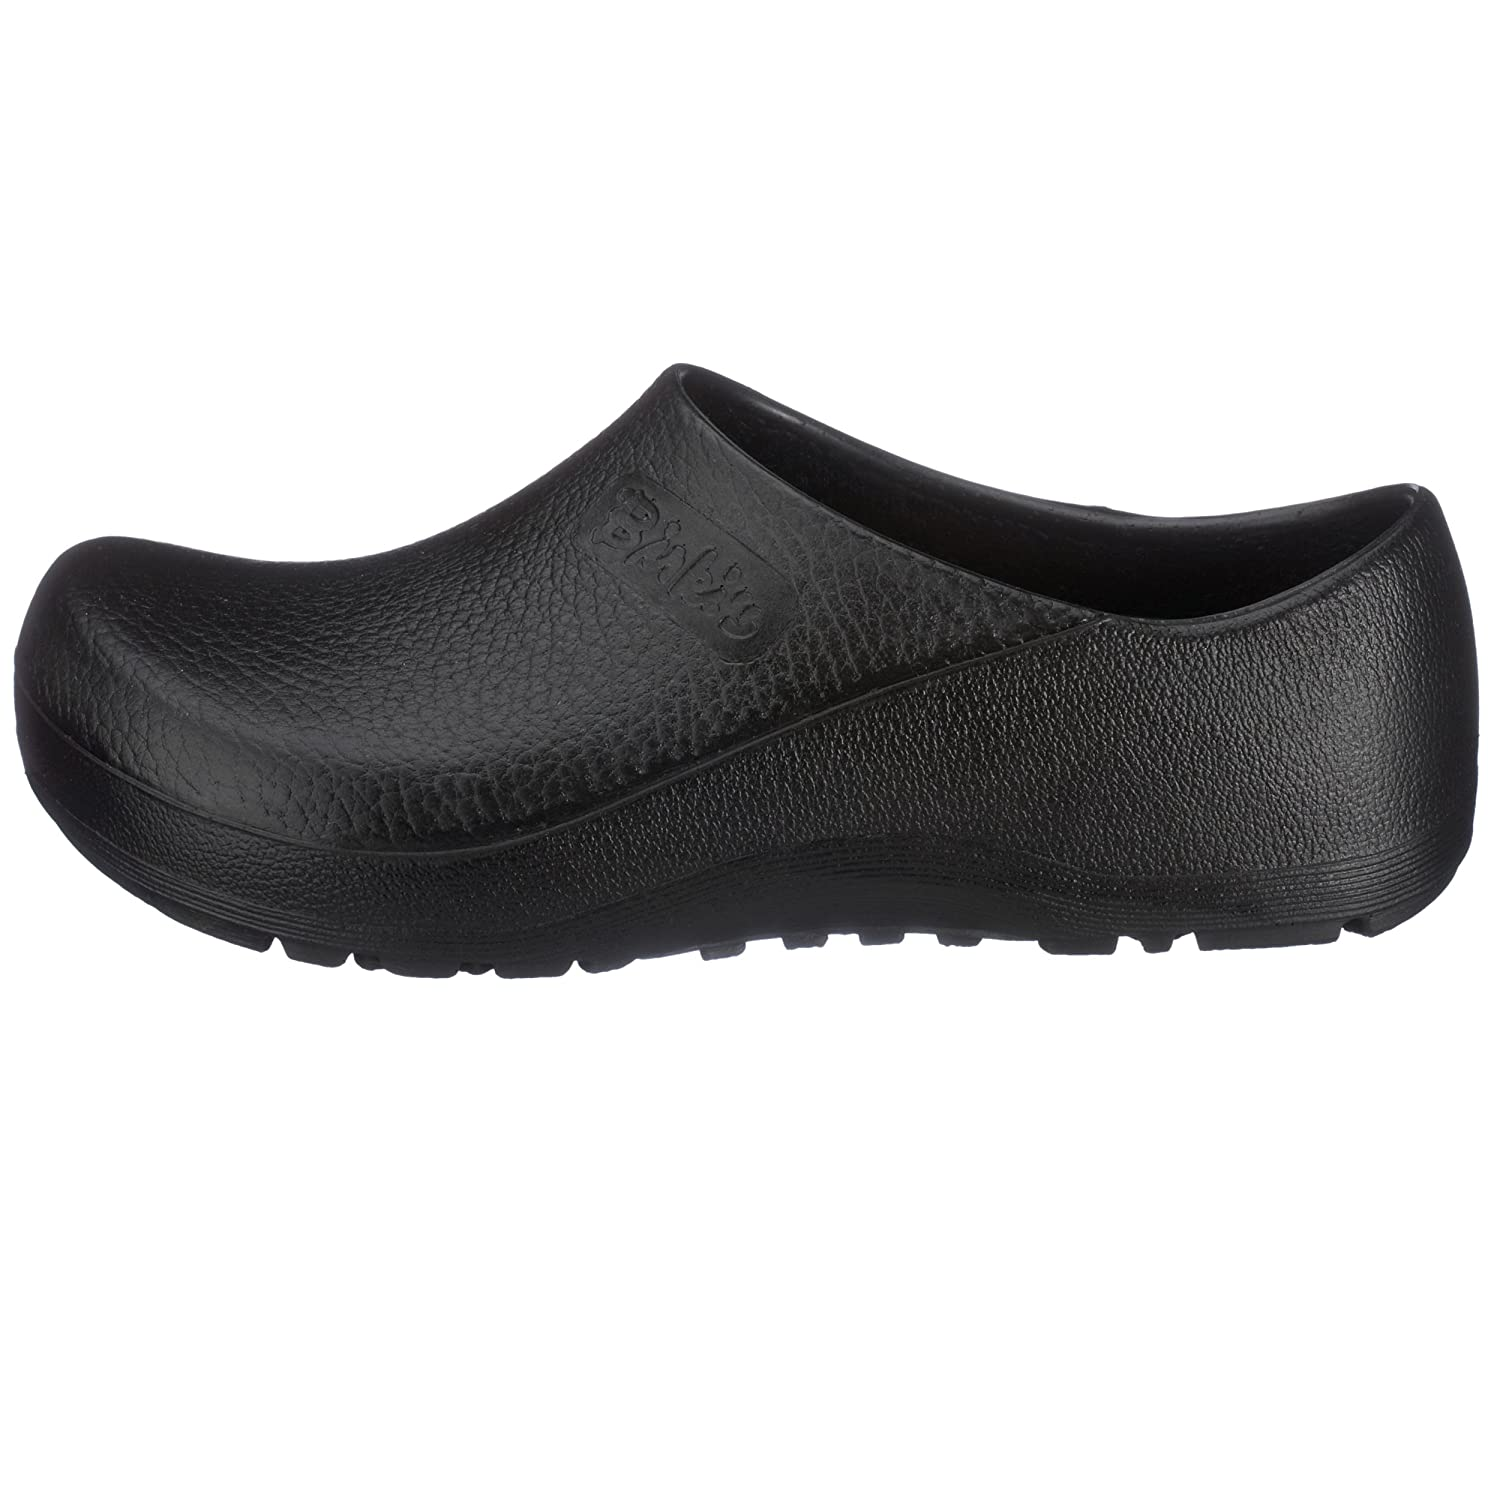 Birkenstock womens from Polyurethane Synthetic-Clogs